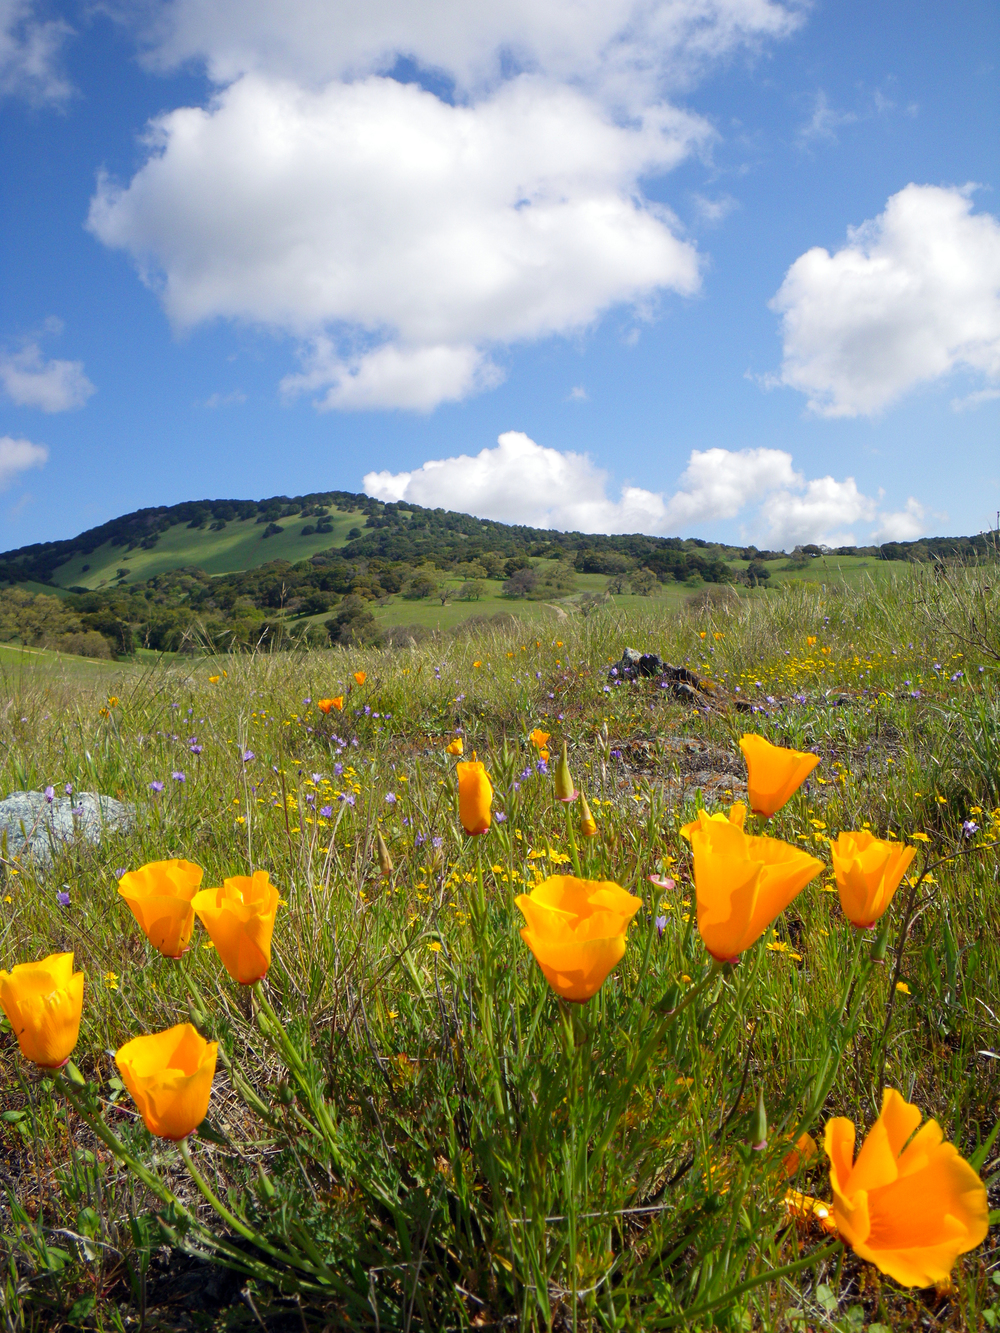 Road to Mount Burdell